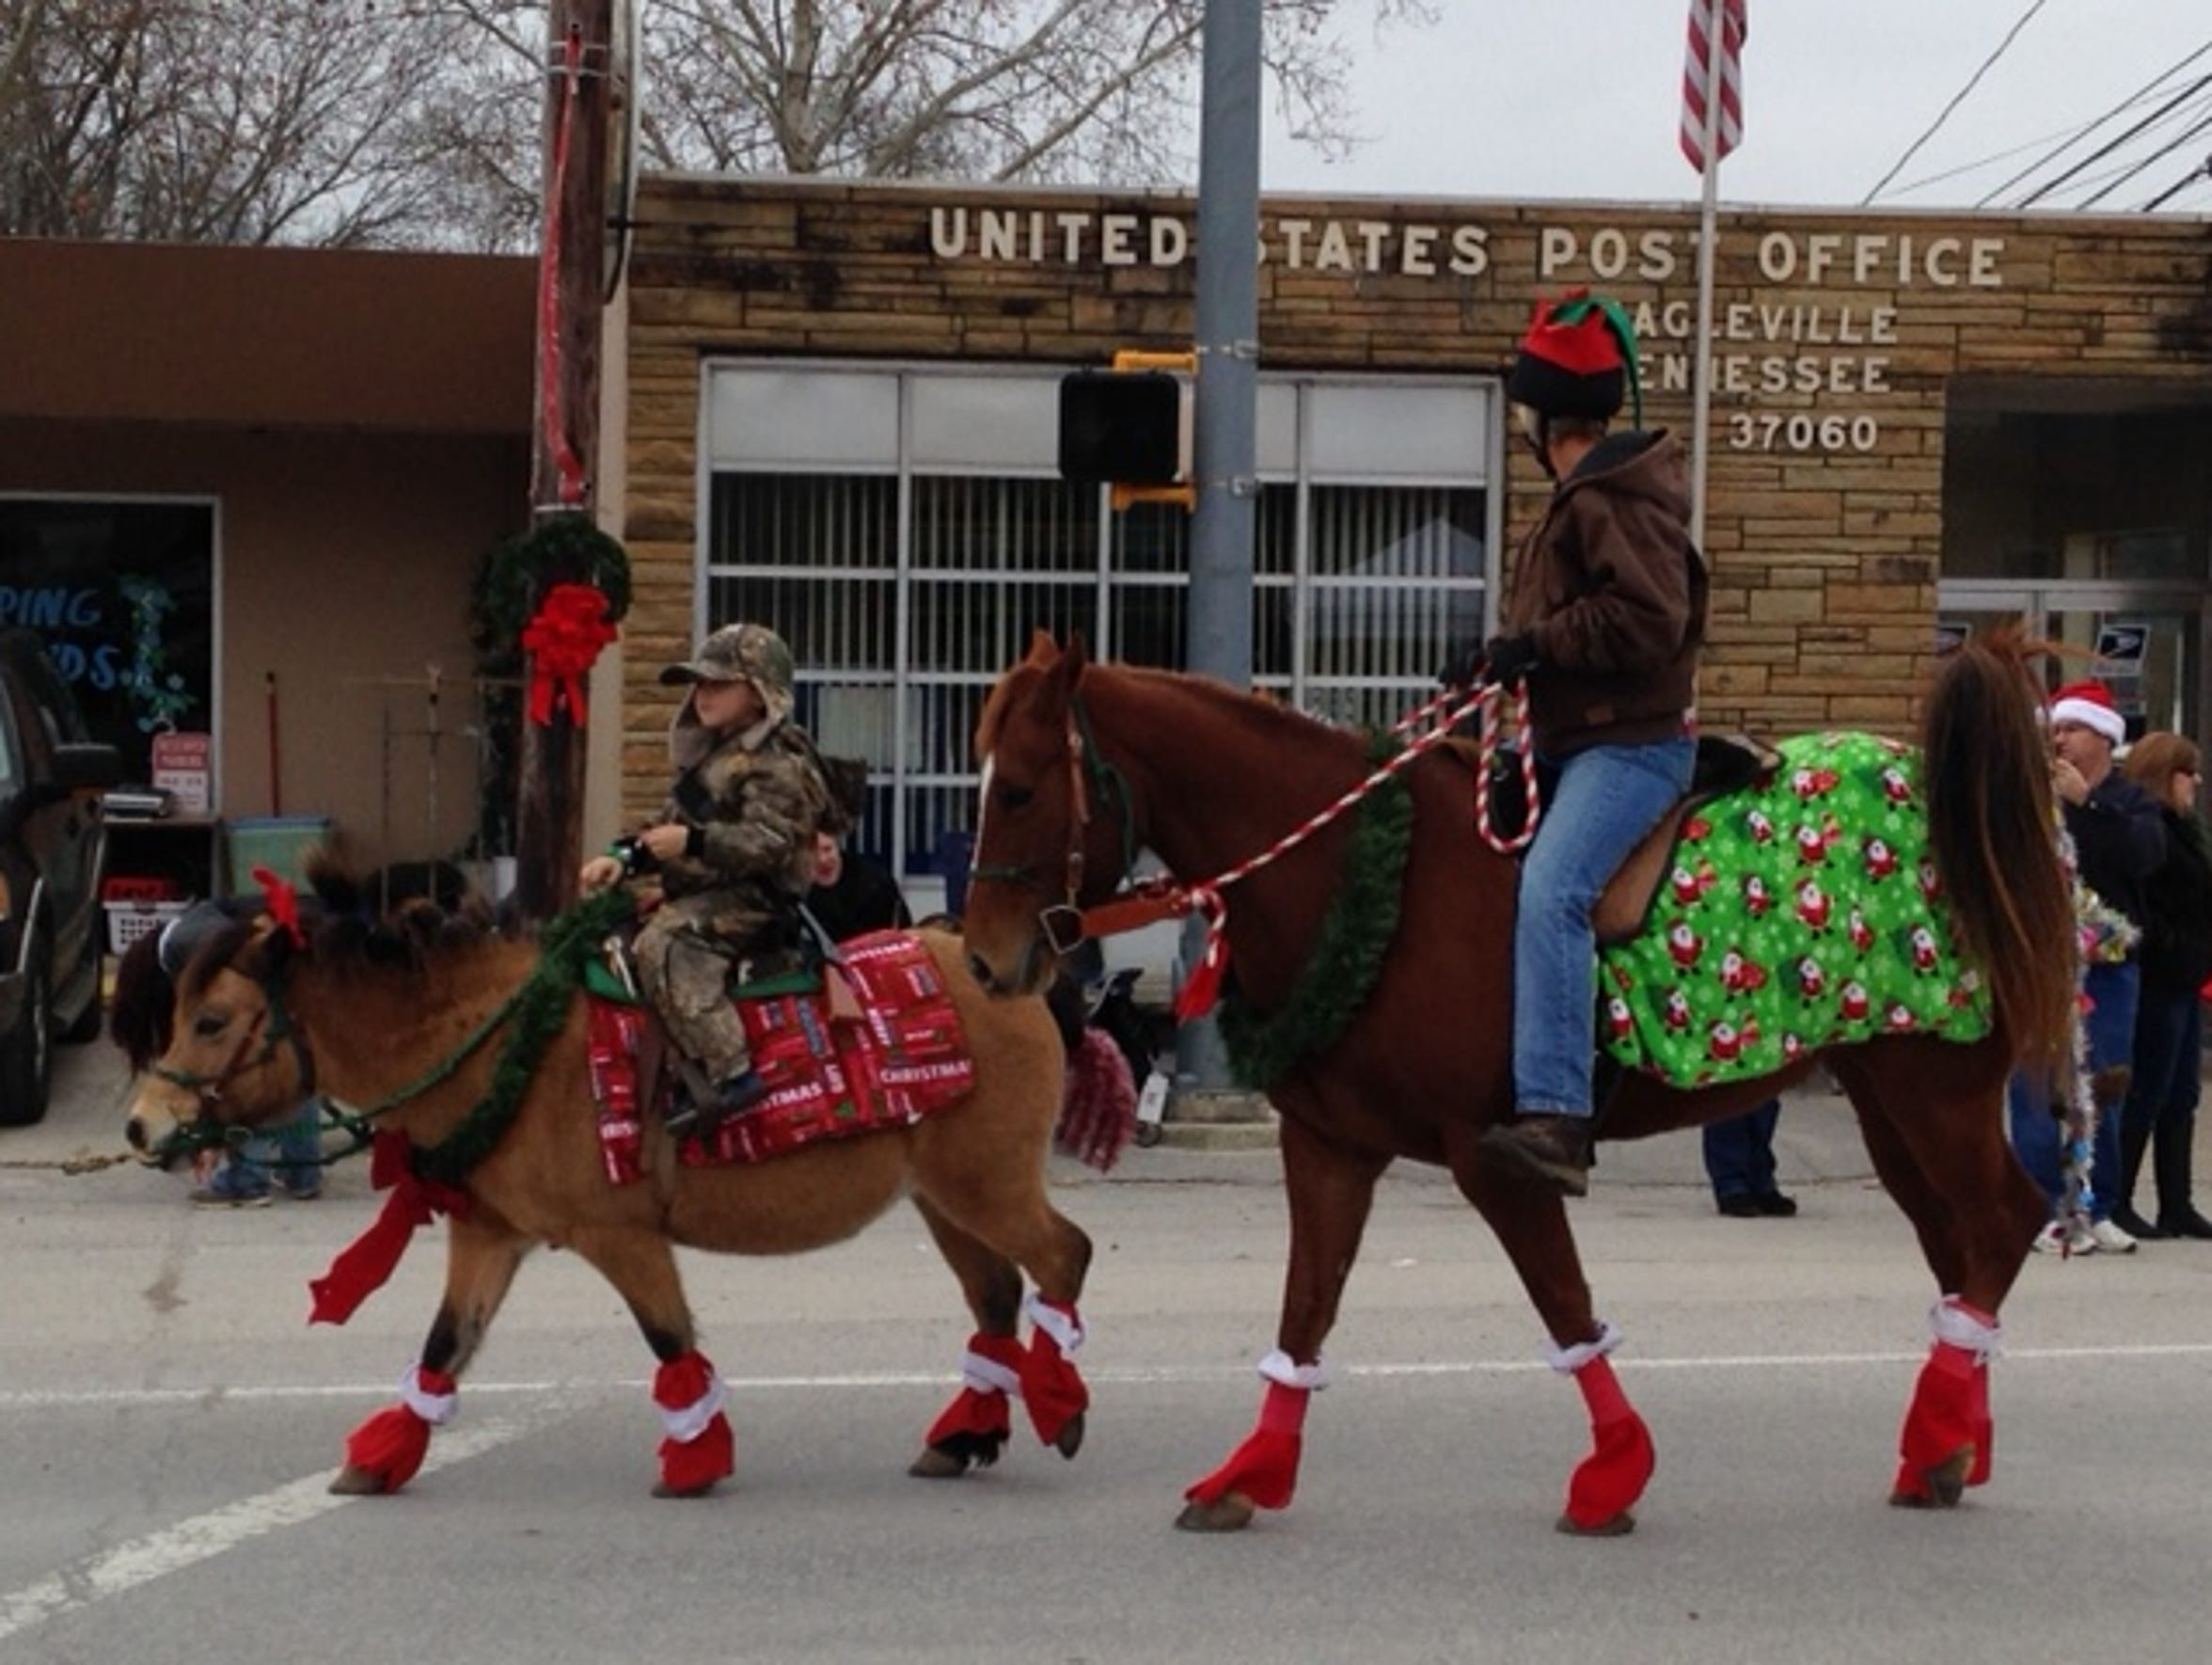 The Eagleville Christmas Parade is set to step off